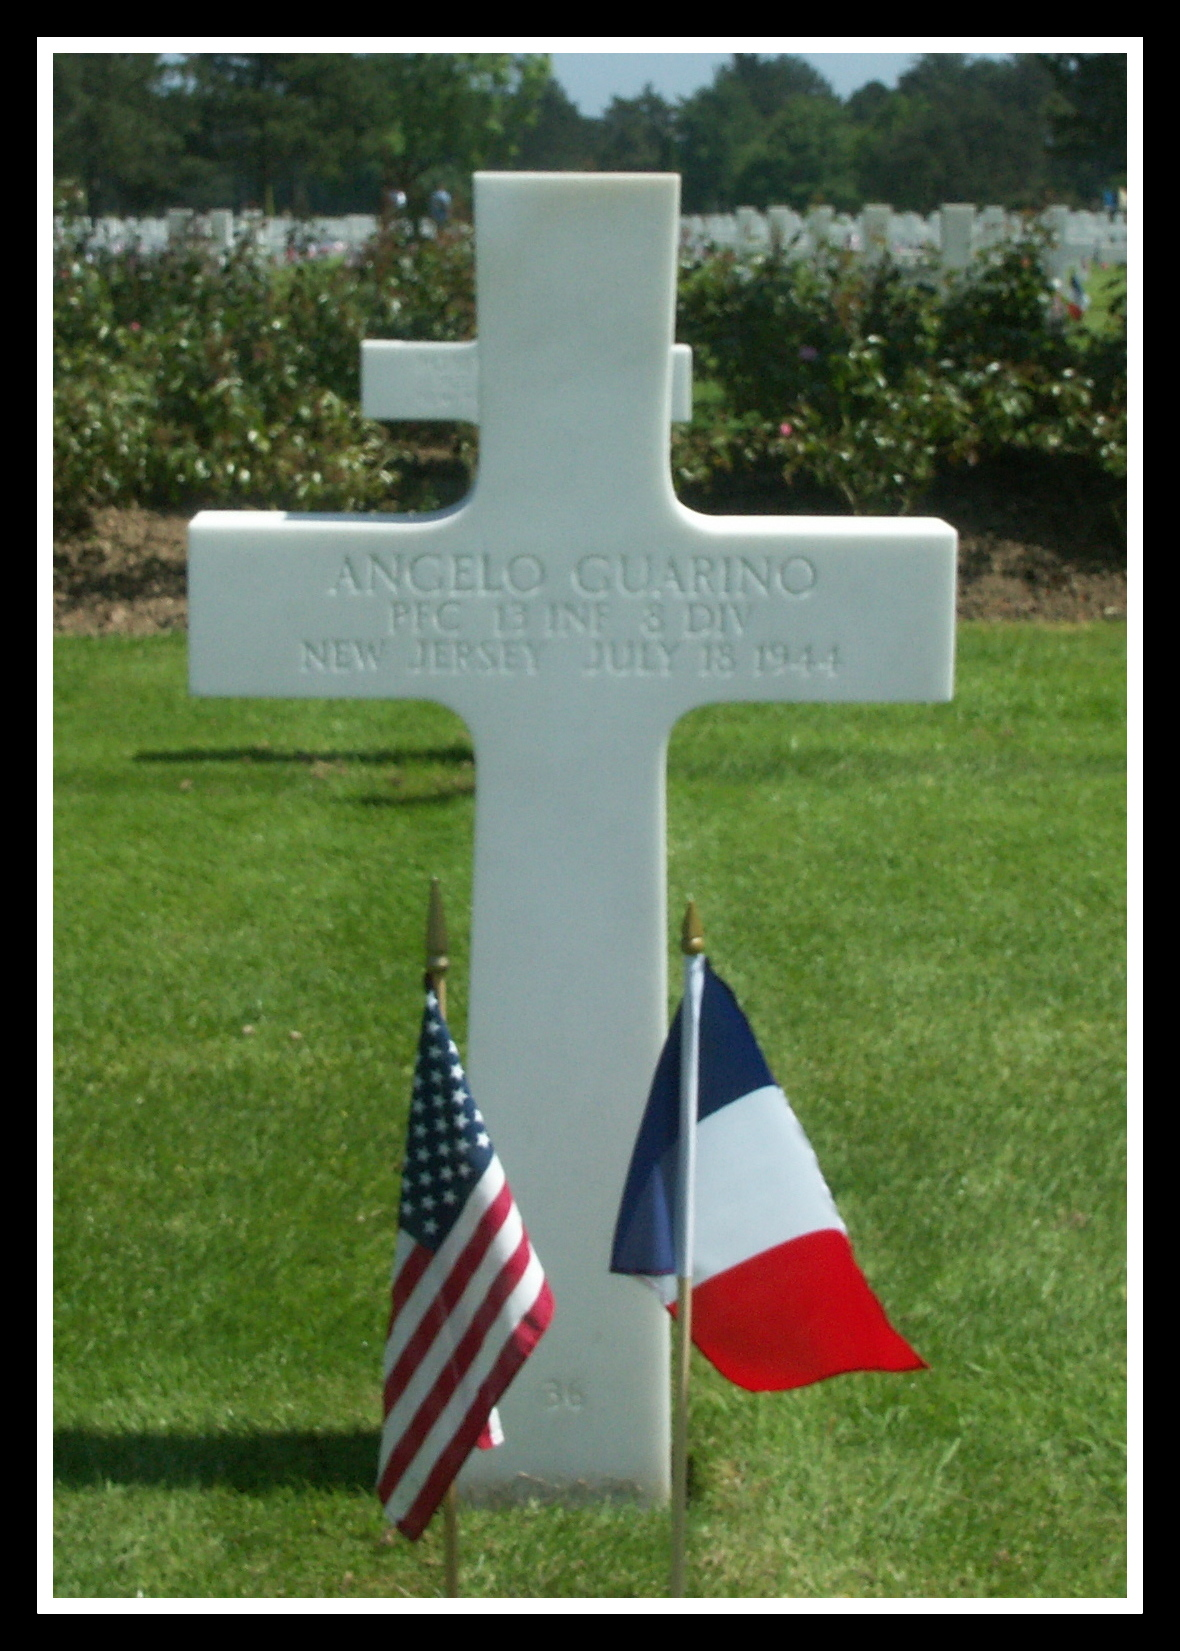 Normandy Photo Copyright © 2004 by Robert Caruso, used by permission